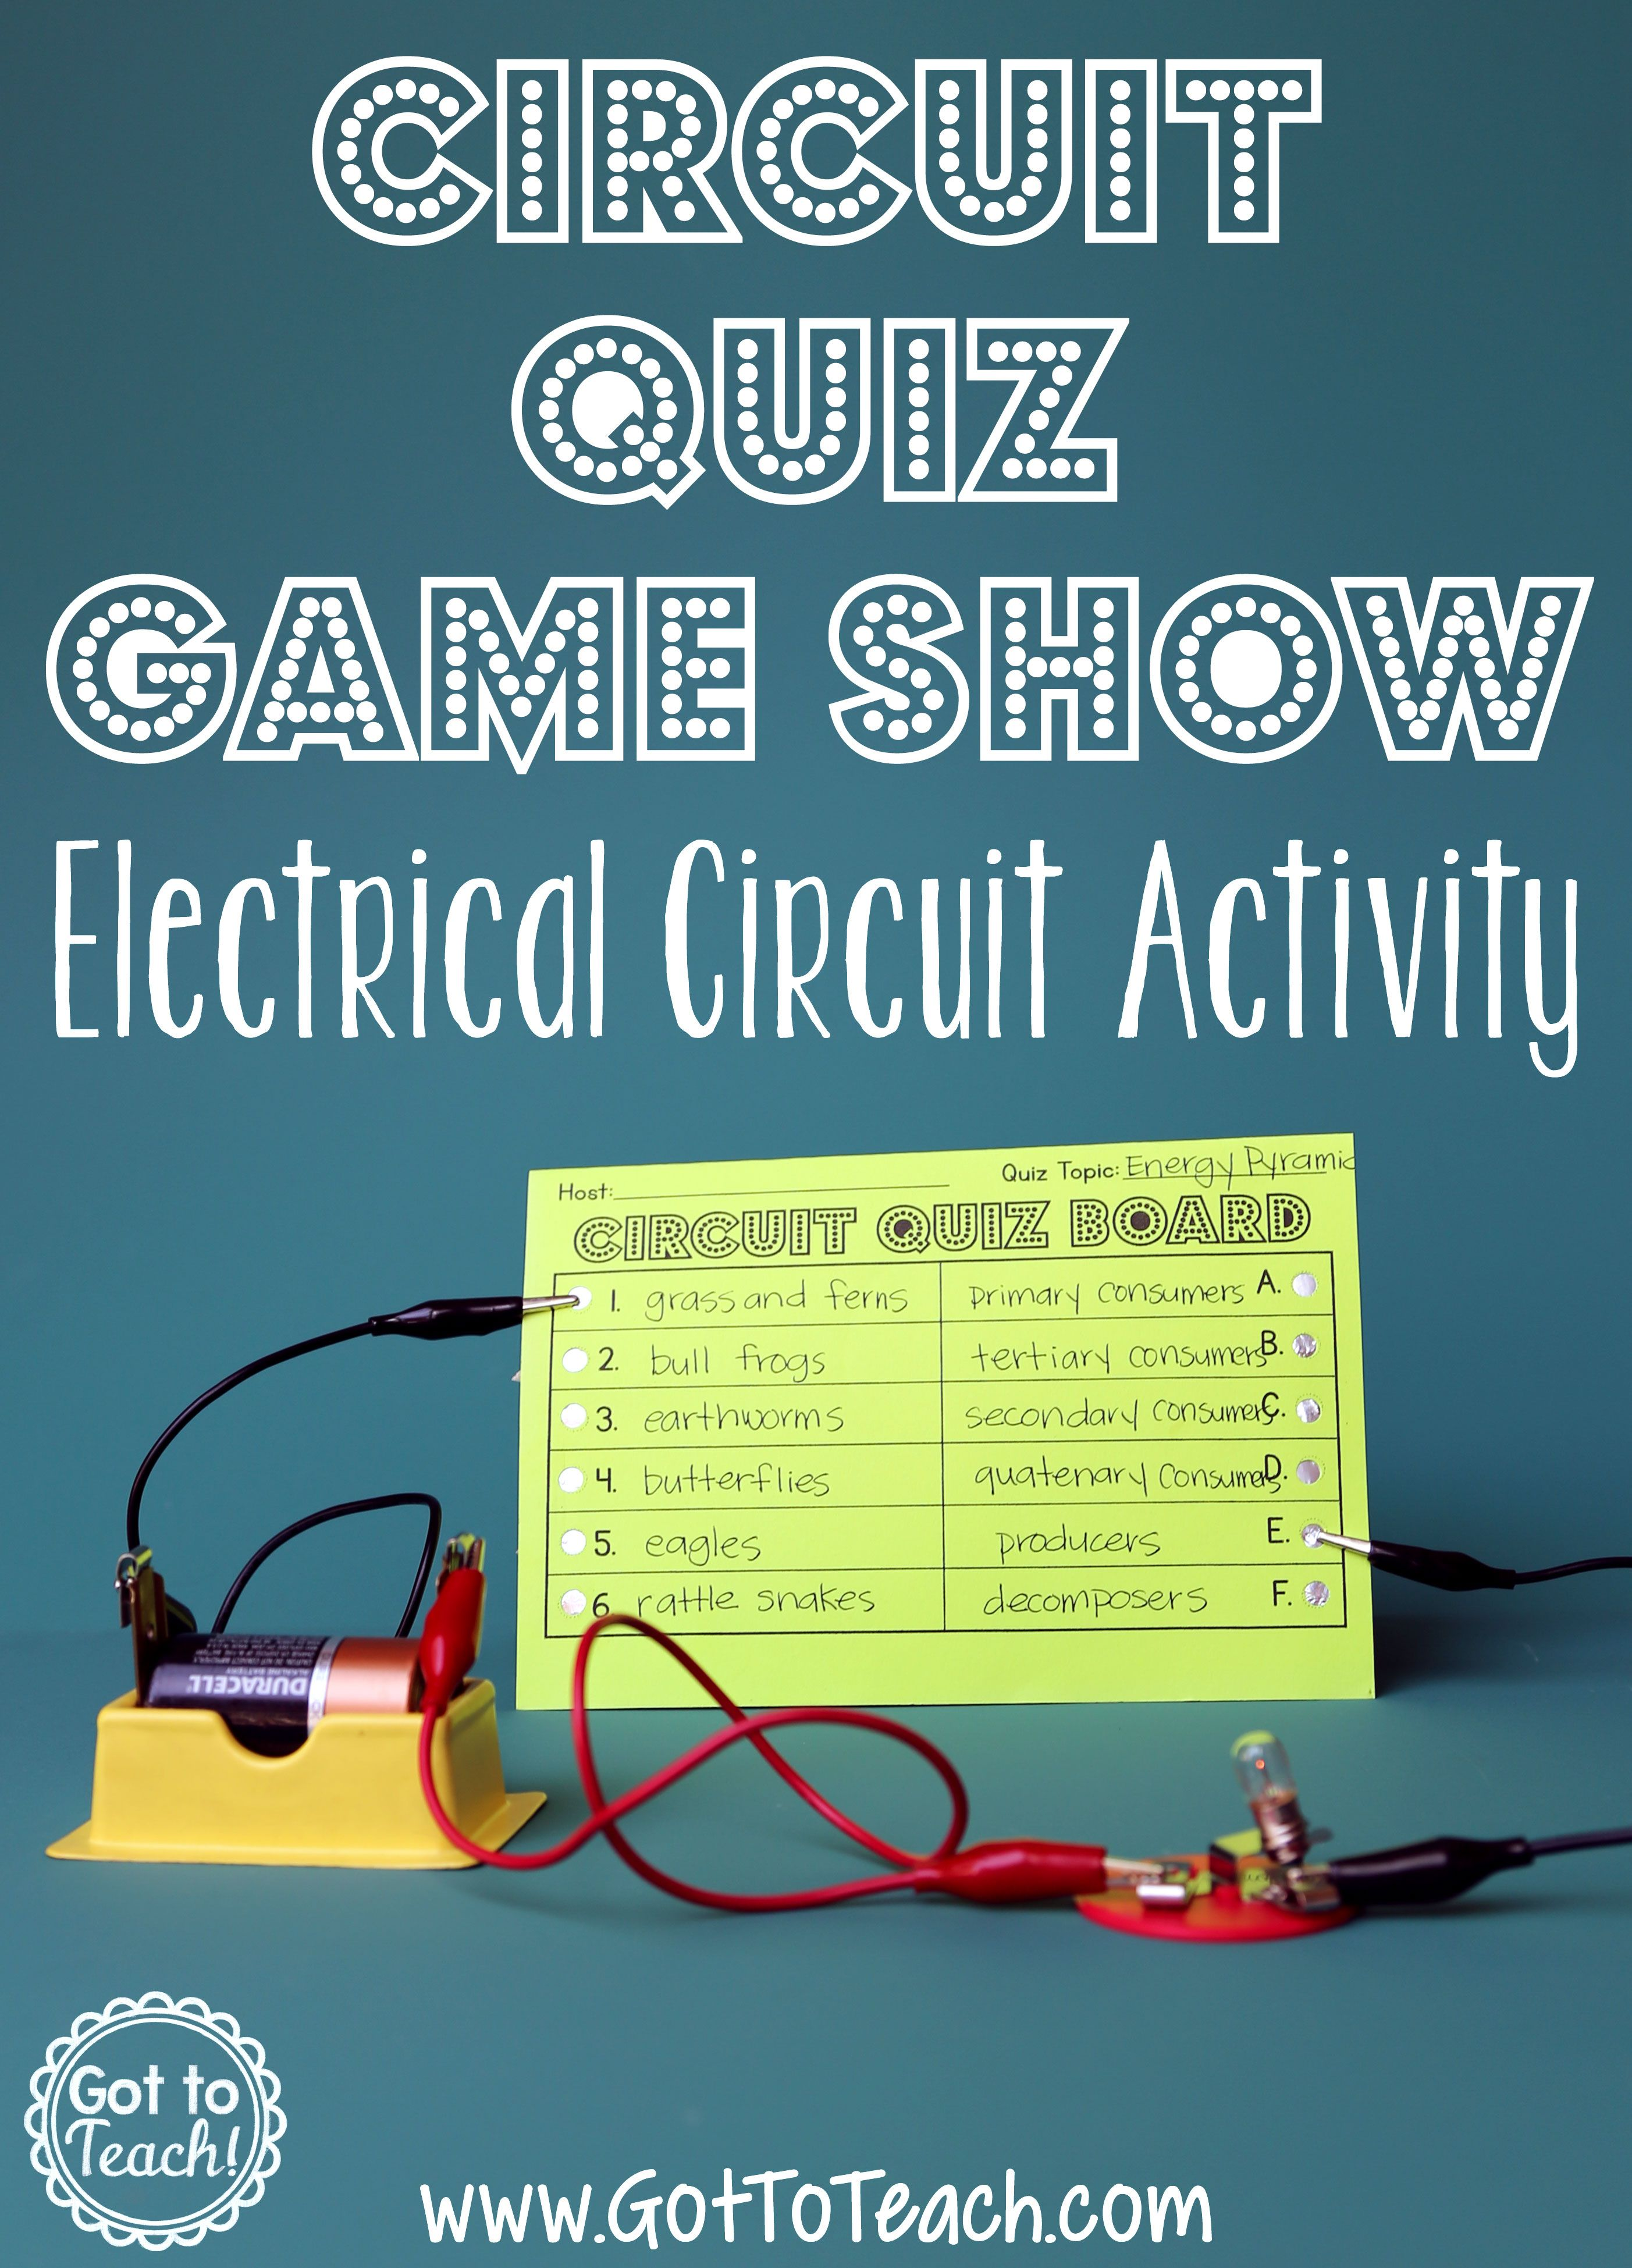 hight resolution of circuit quiz game show activity check out this blog post for a fun and engaging